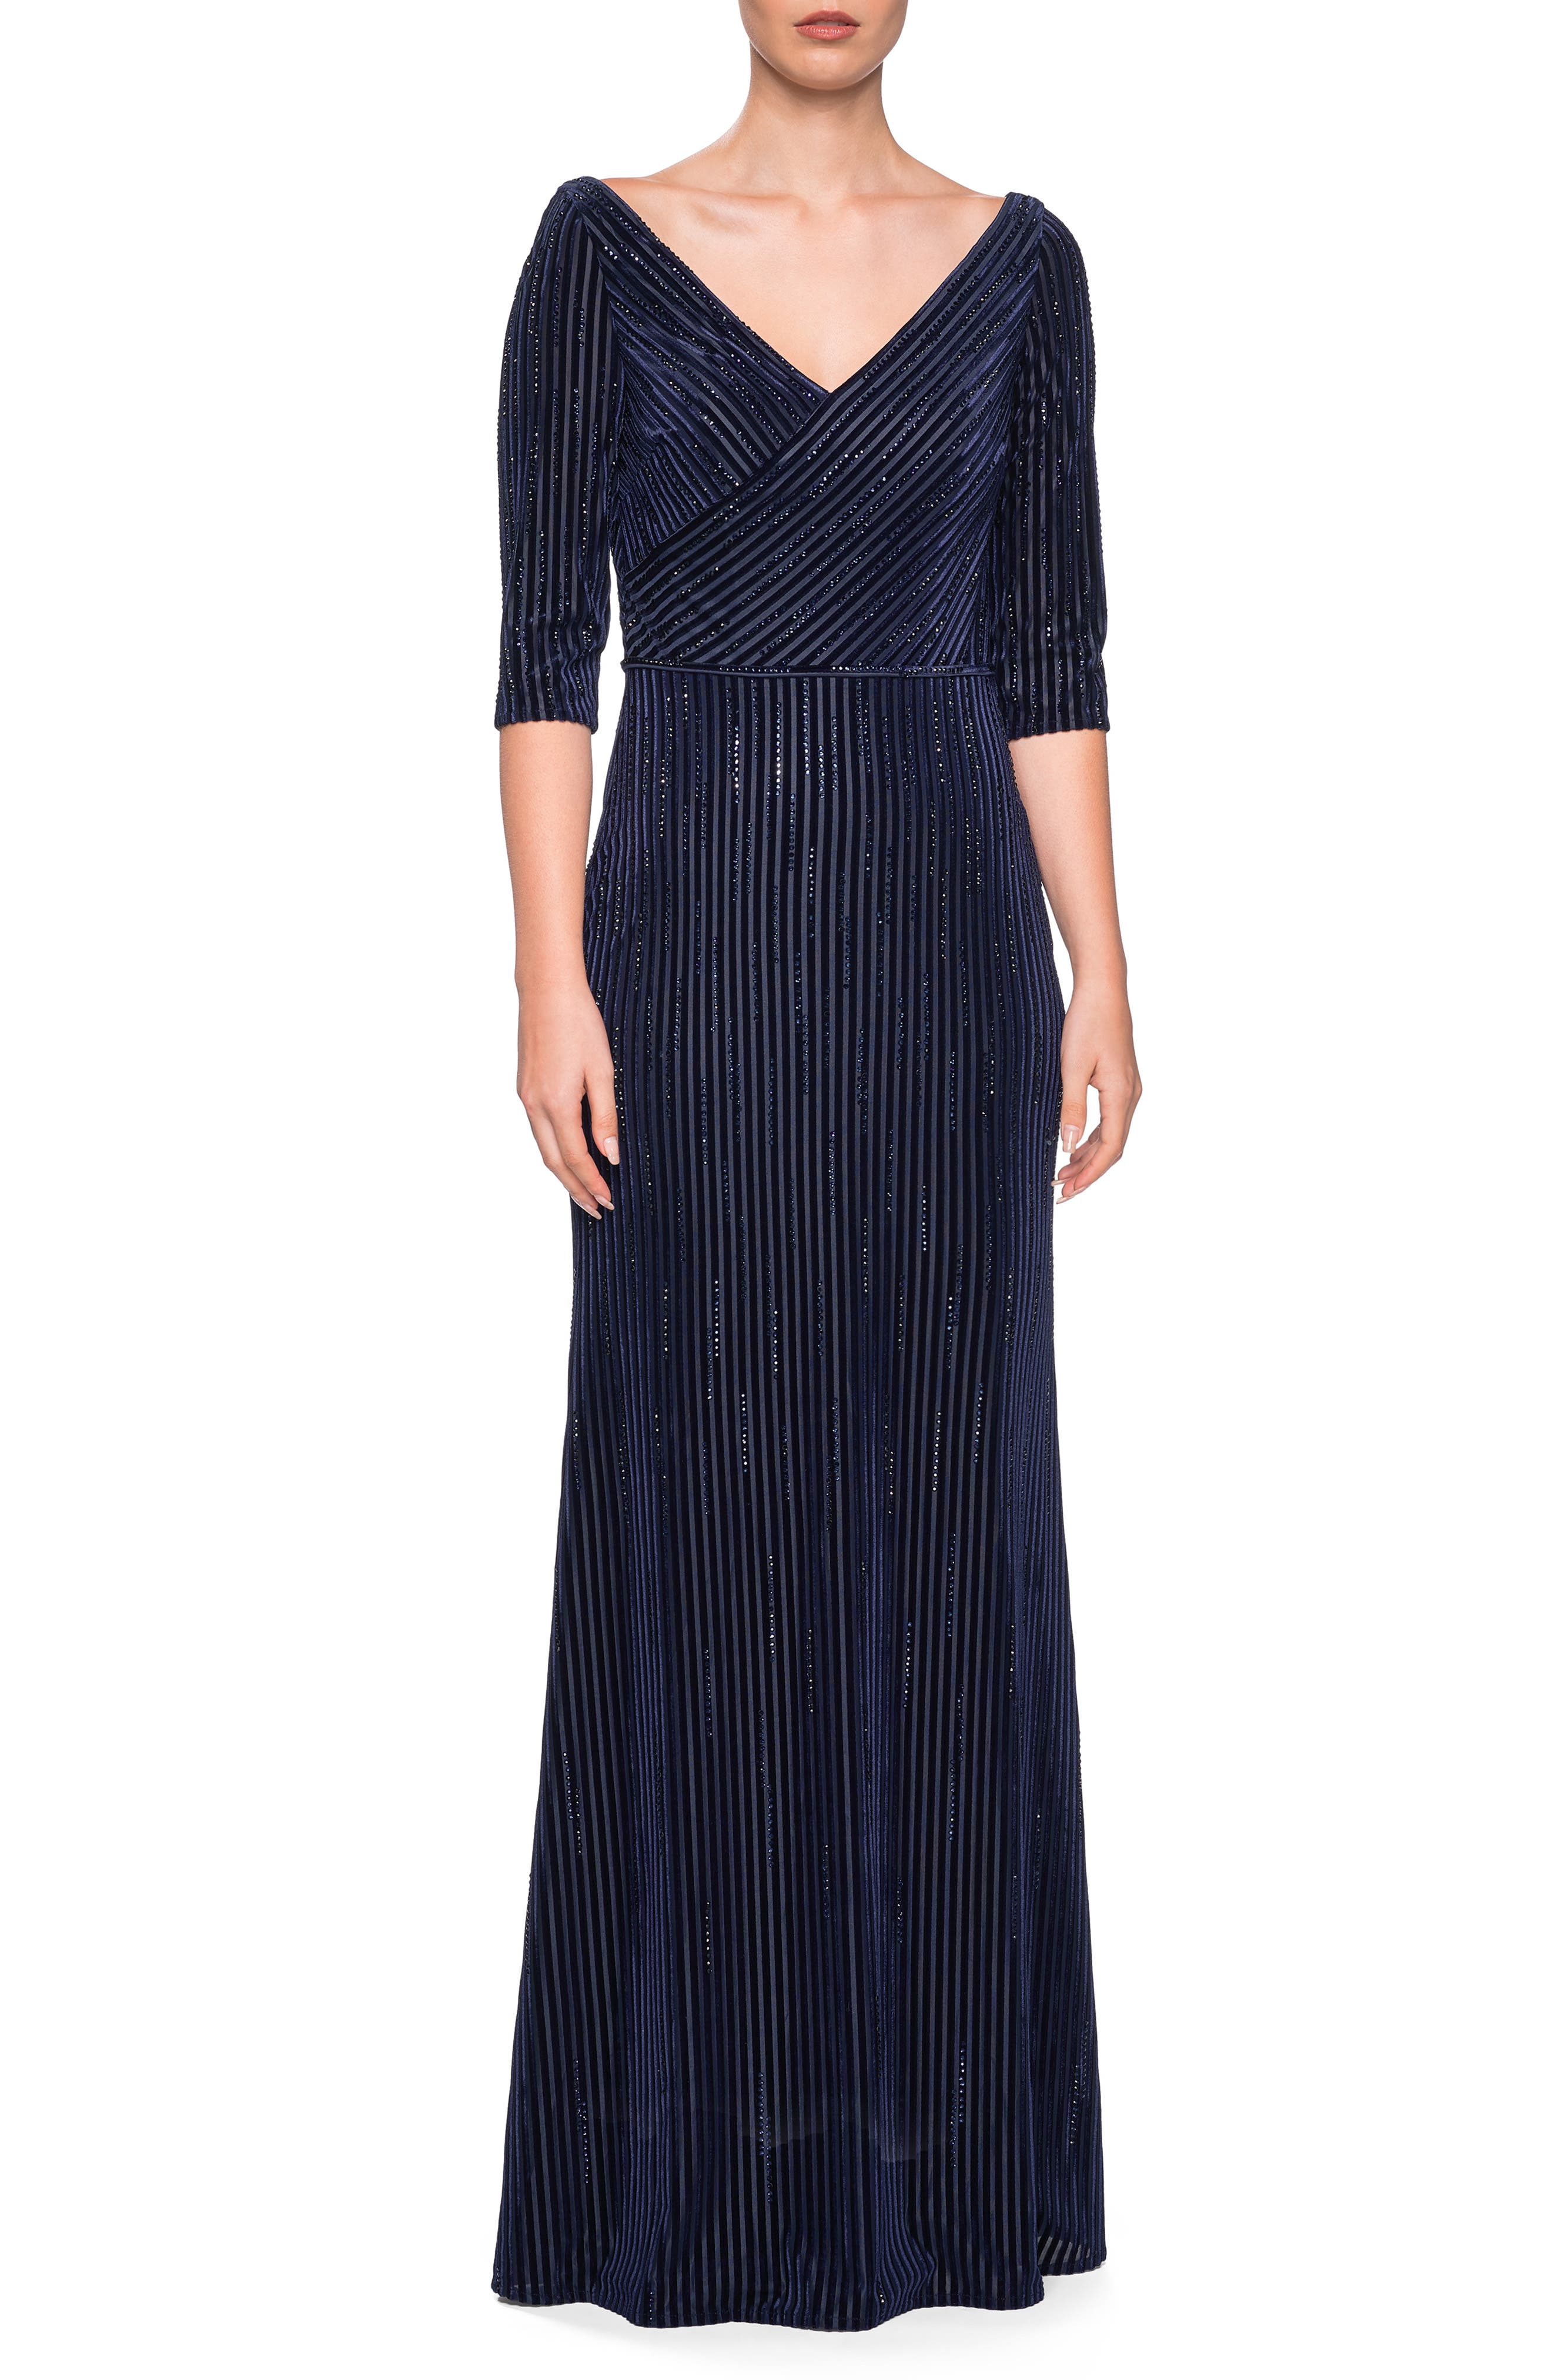 La Femme Striped Velvet Column Gown, Blue